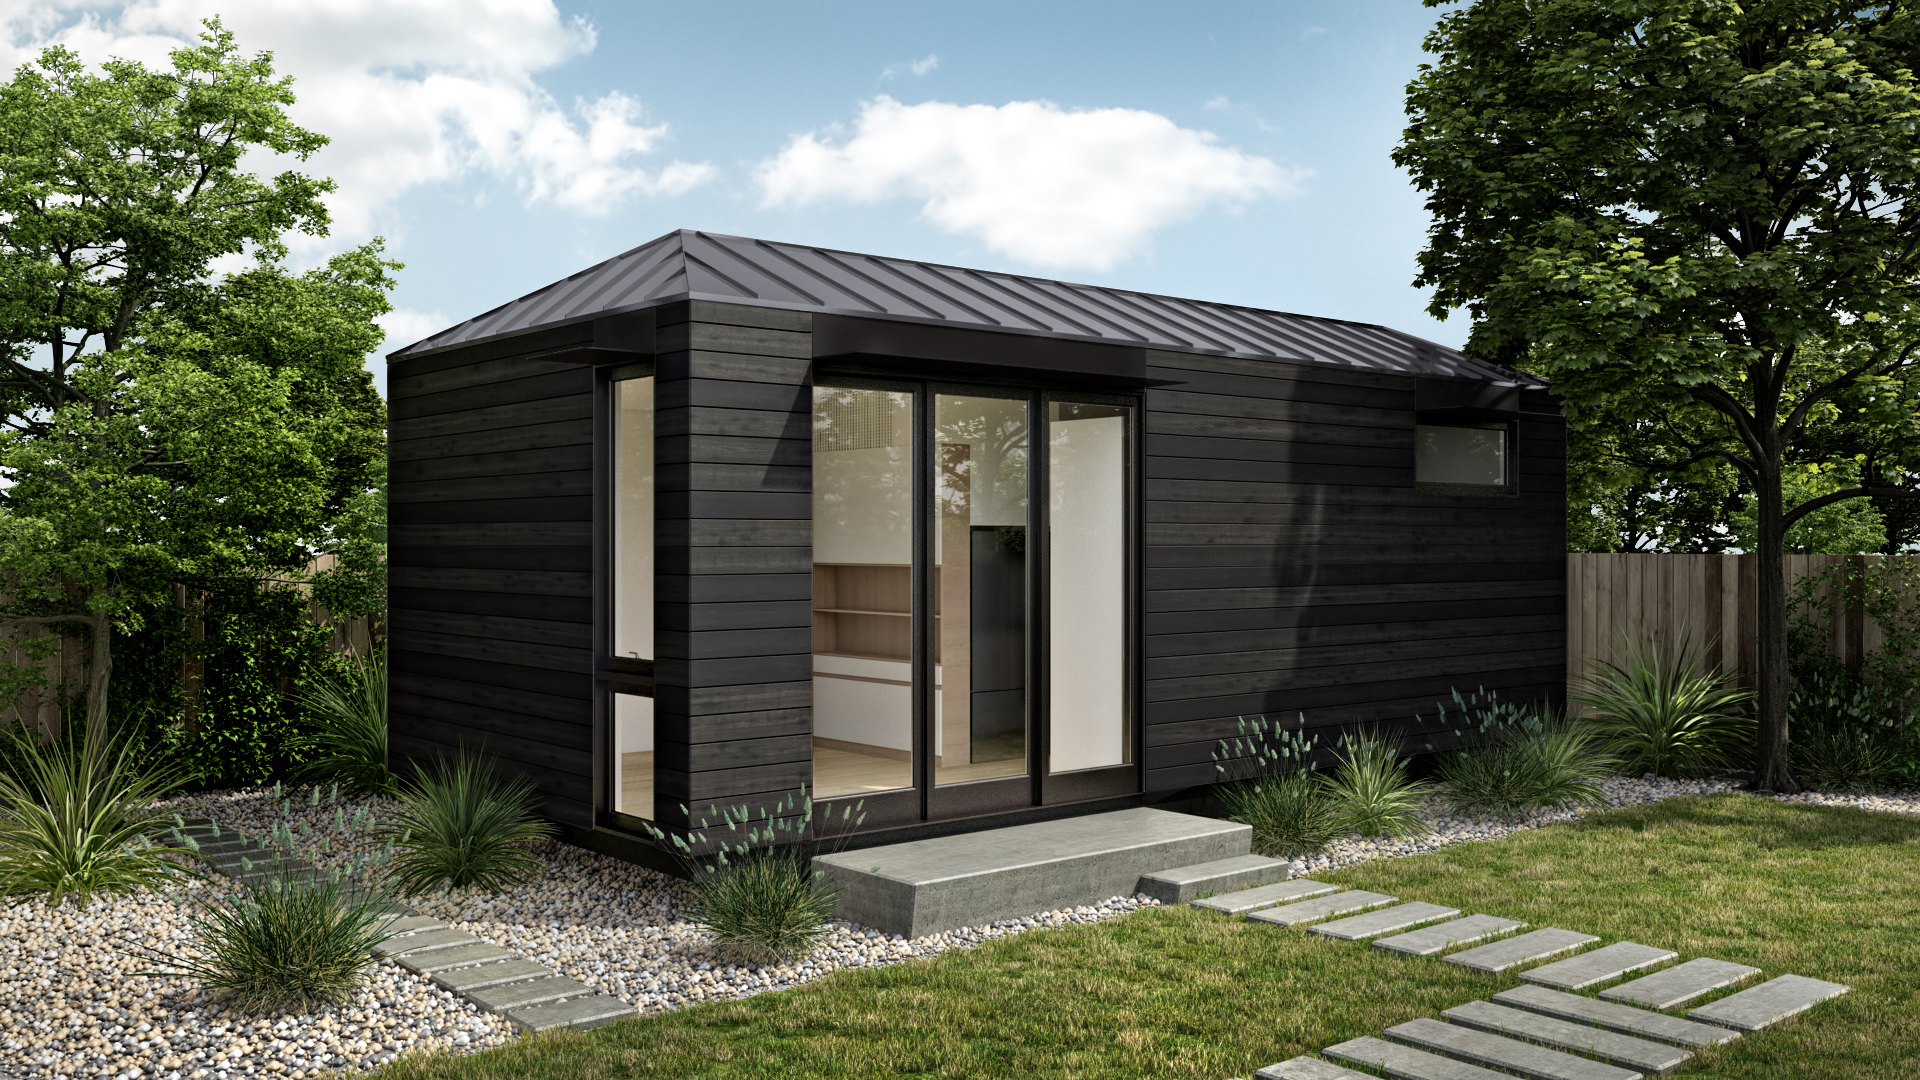 LivingHomes Offers Accessory Dwelling Units | Residential